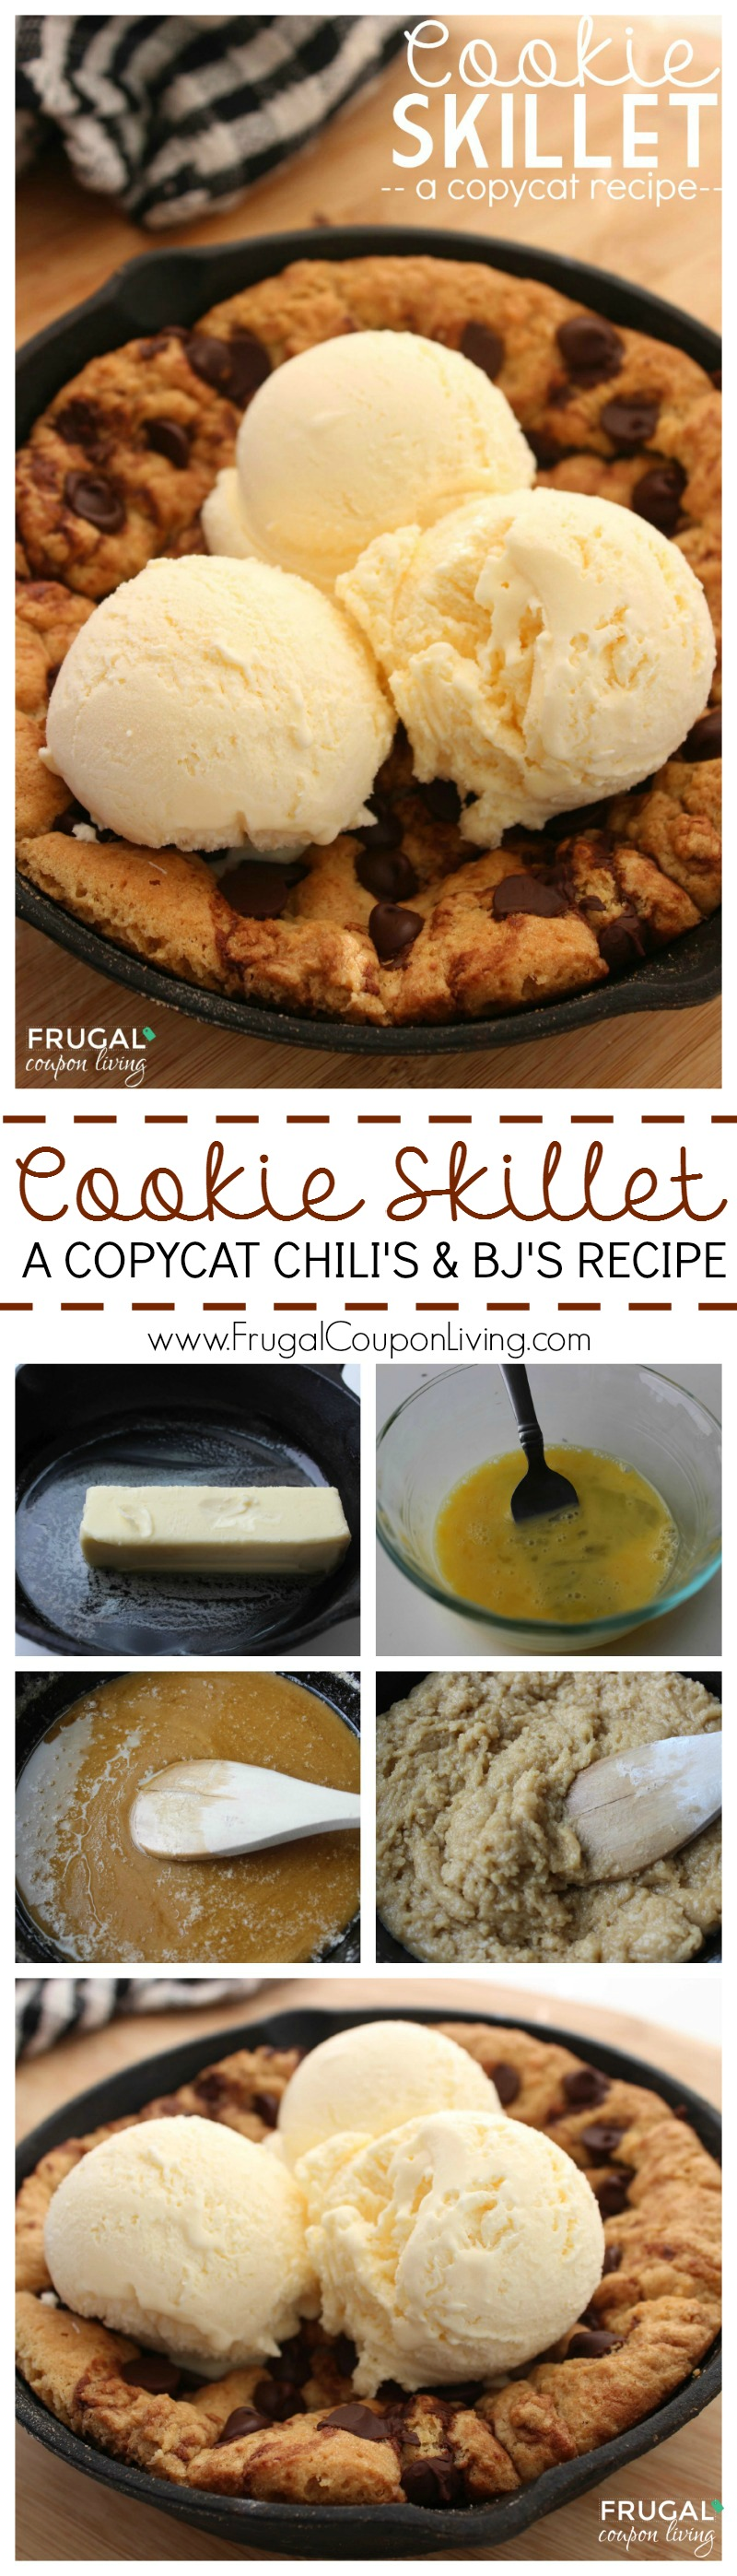 cookie-skillet-copycat-recipe-Collage-frugal-coupon-living-finished